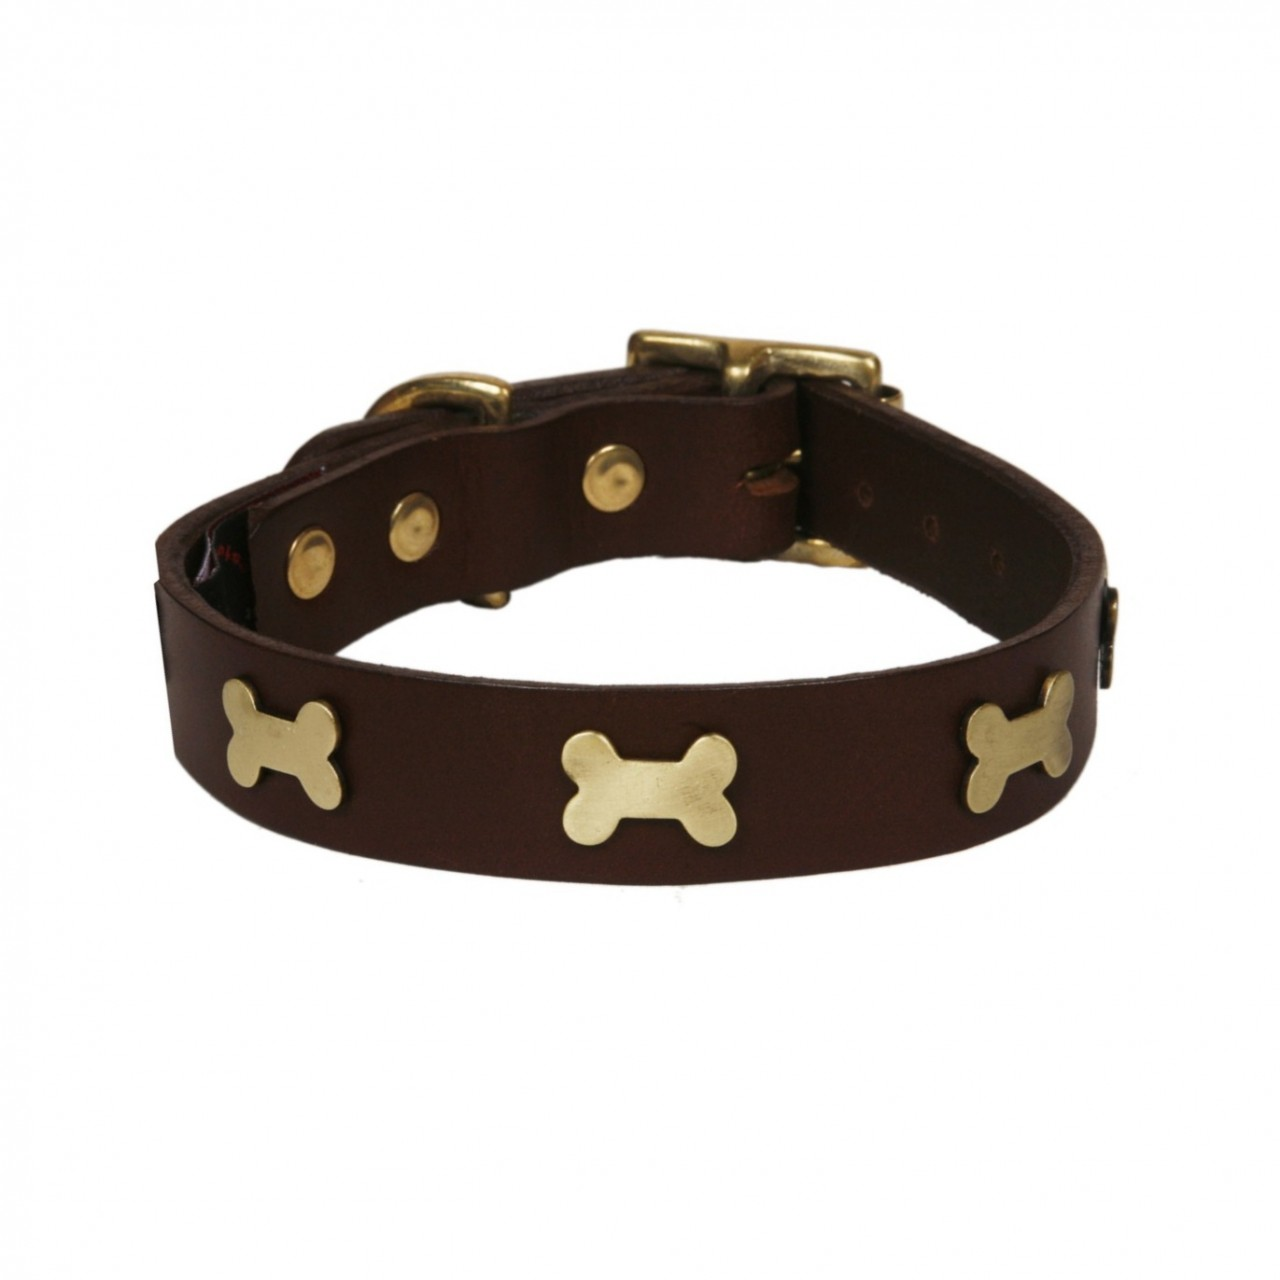 Leather Dog Collar photo - 1